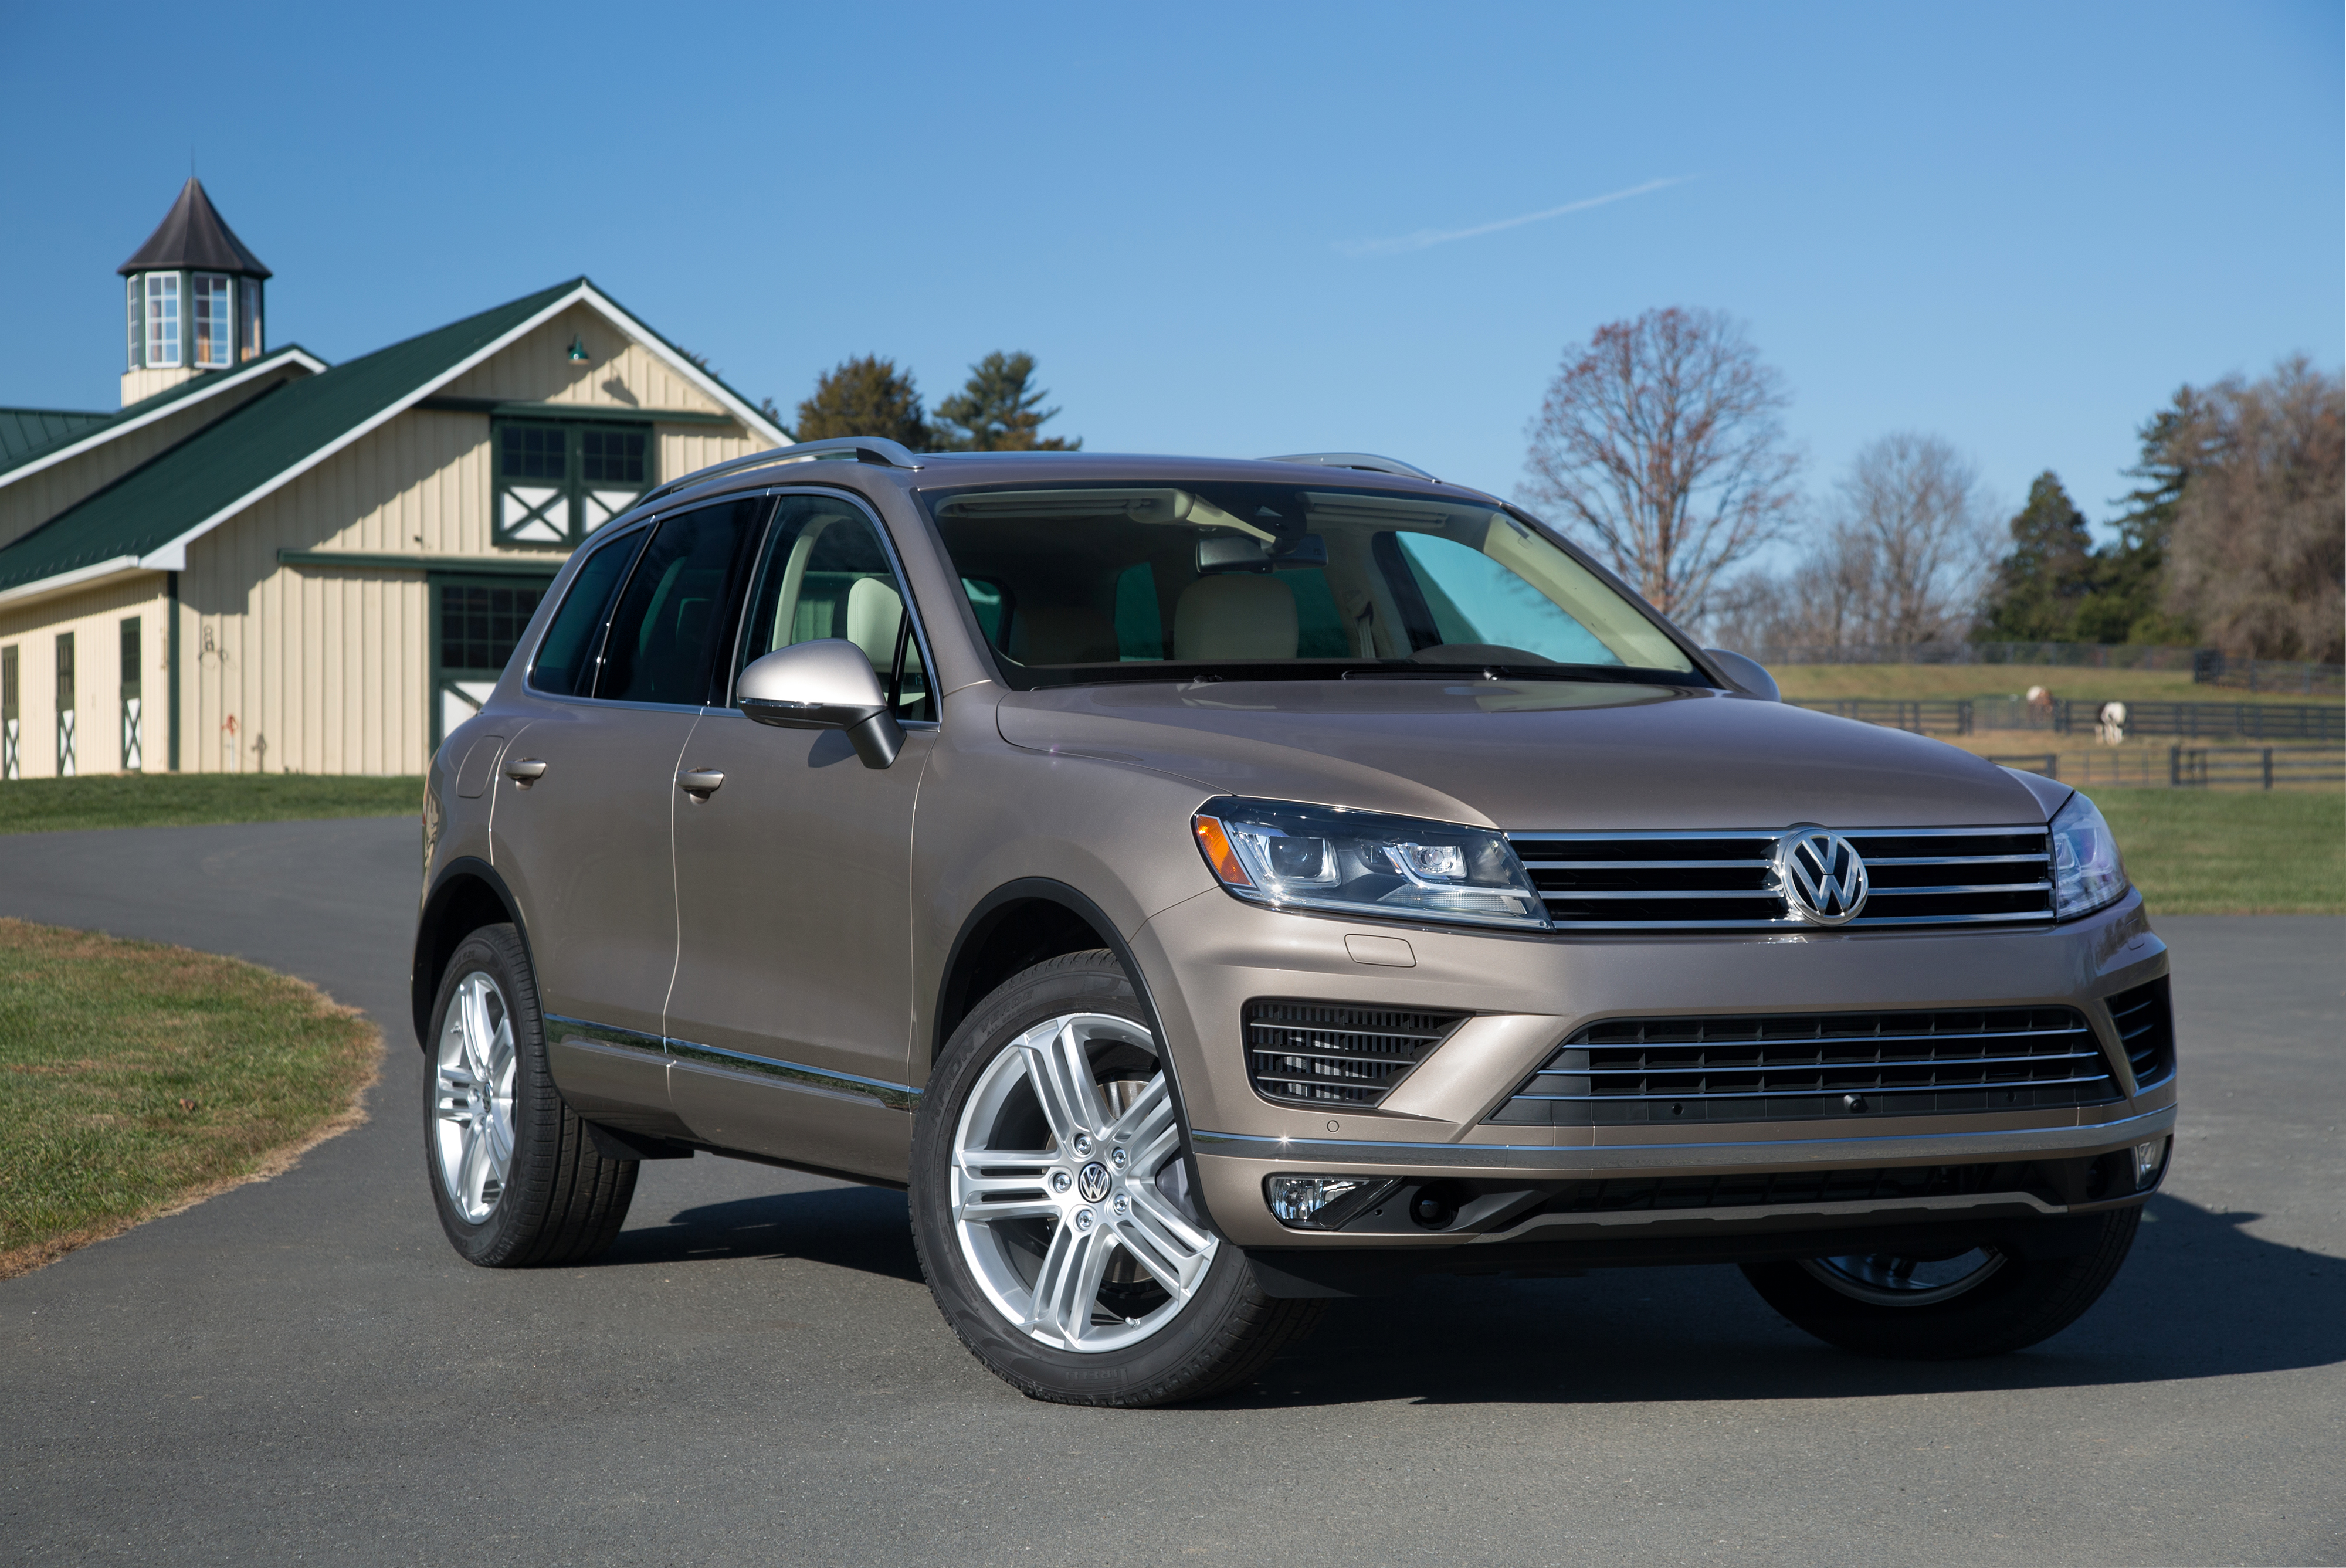 site makes en auto images show world us in at debut releases touareg volkswagen beijing china redesigned media